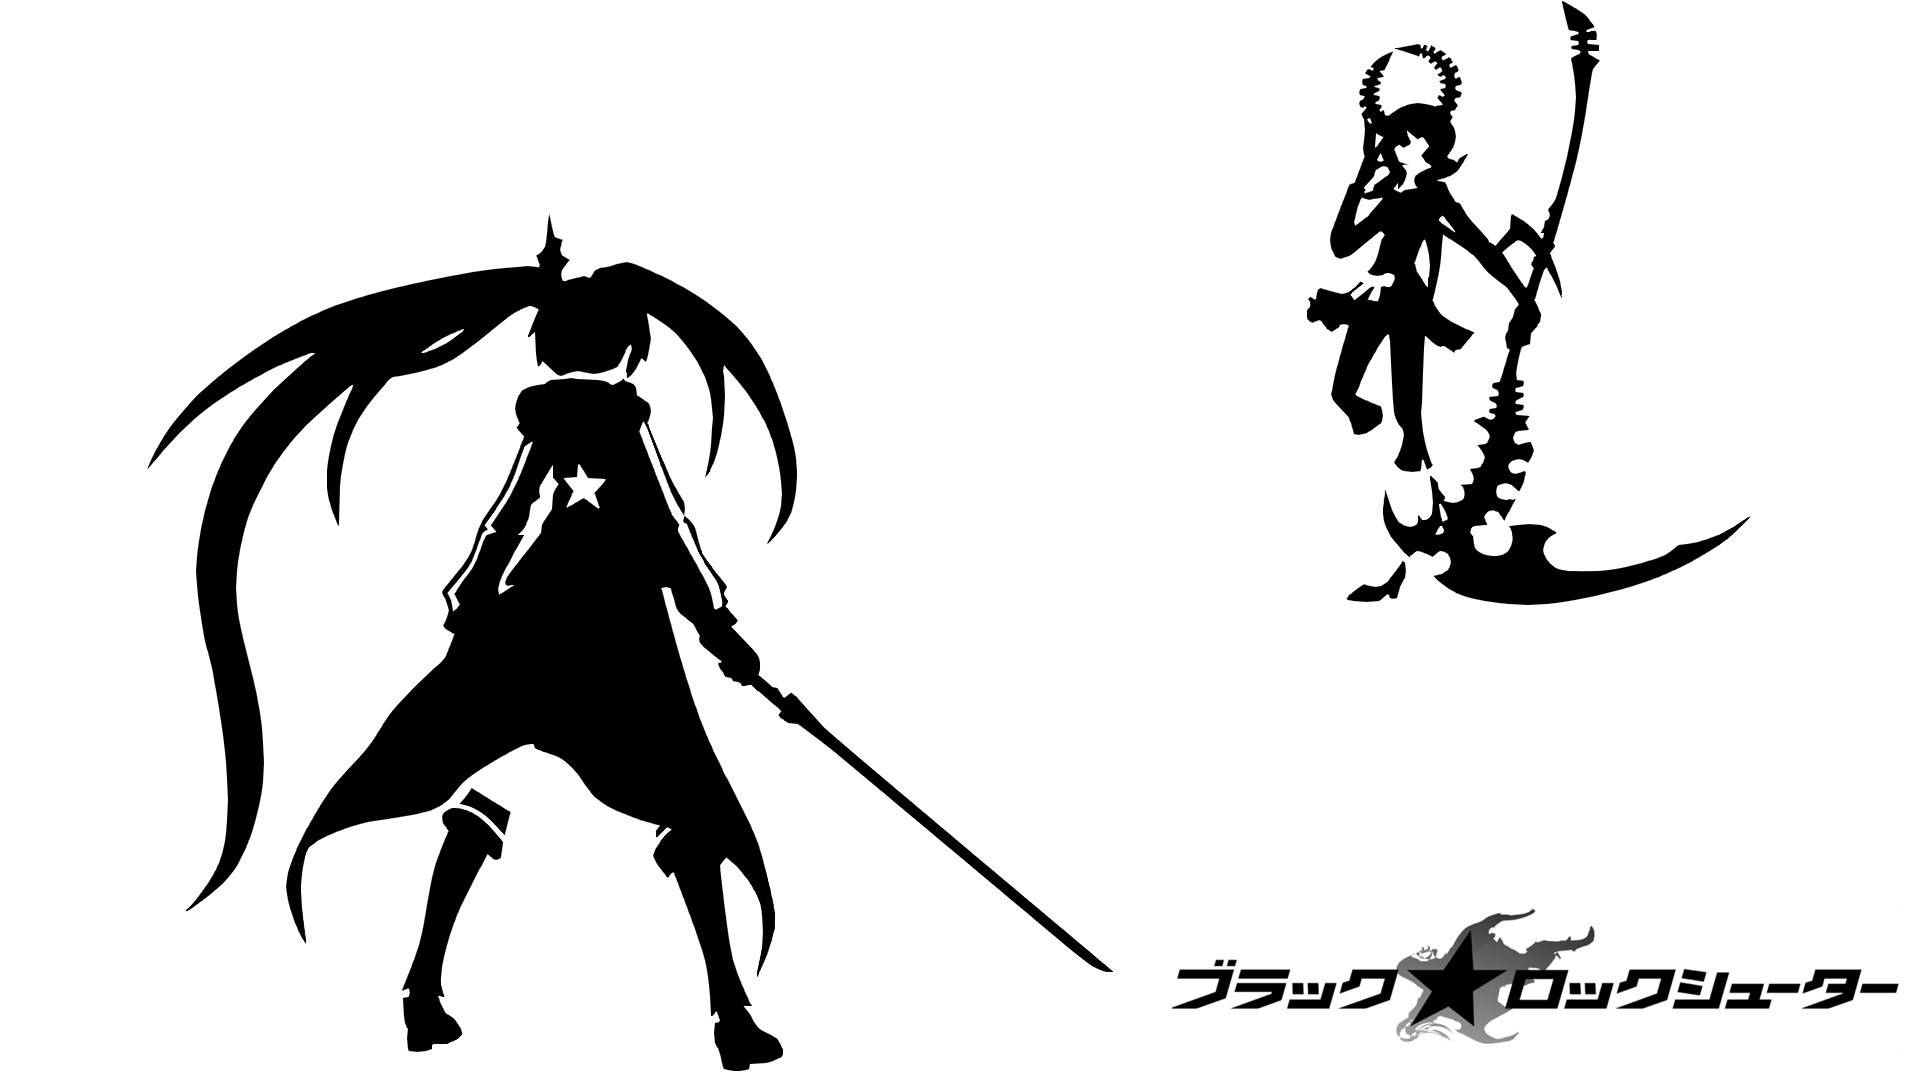 Download full hd 1920x1080 Dead Master (Black Rock Shooter) desktop background ID:453532 for free